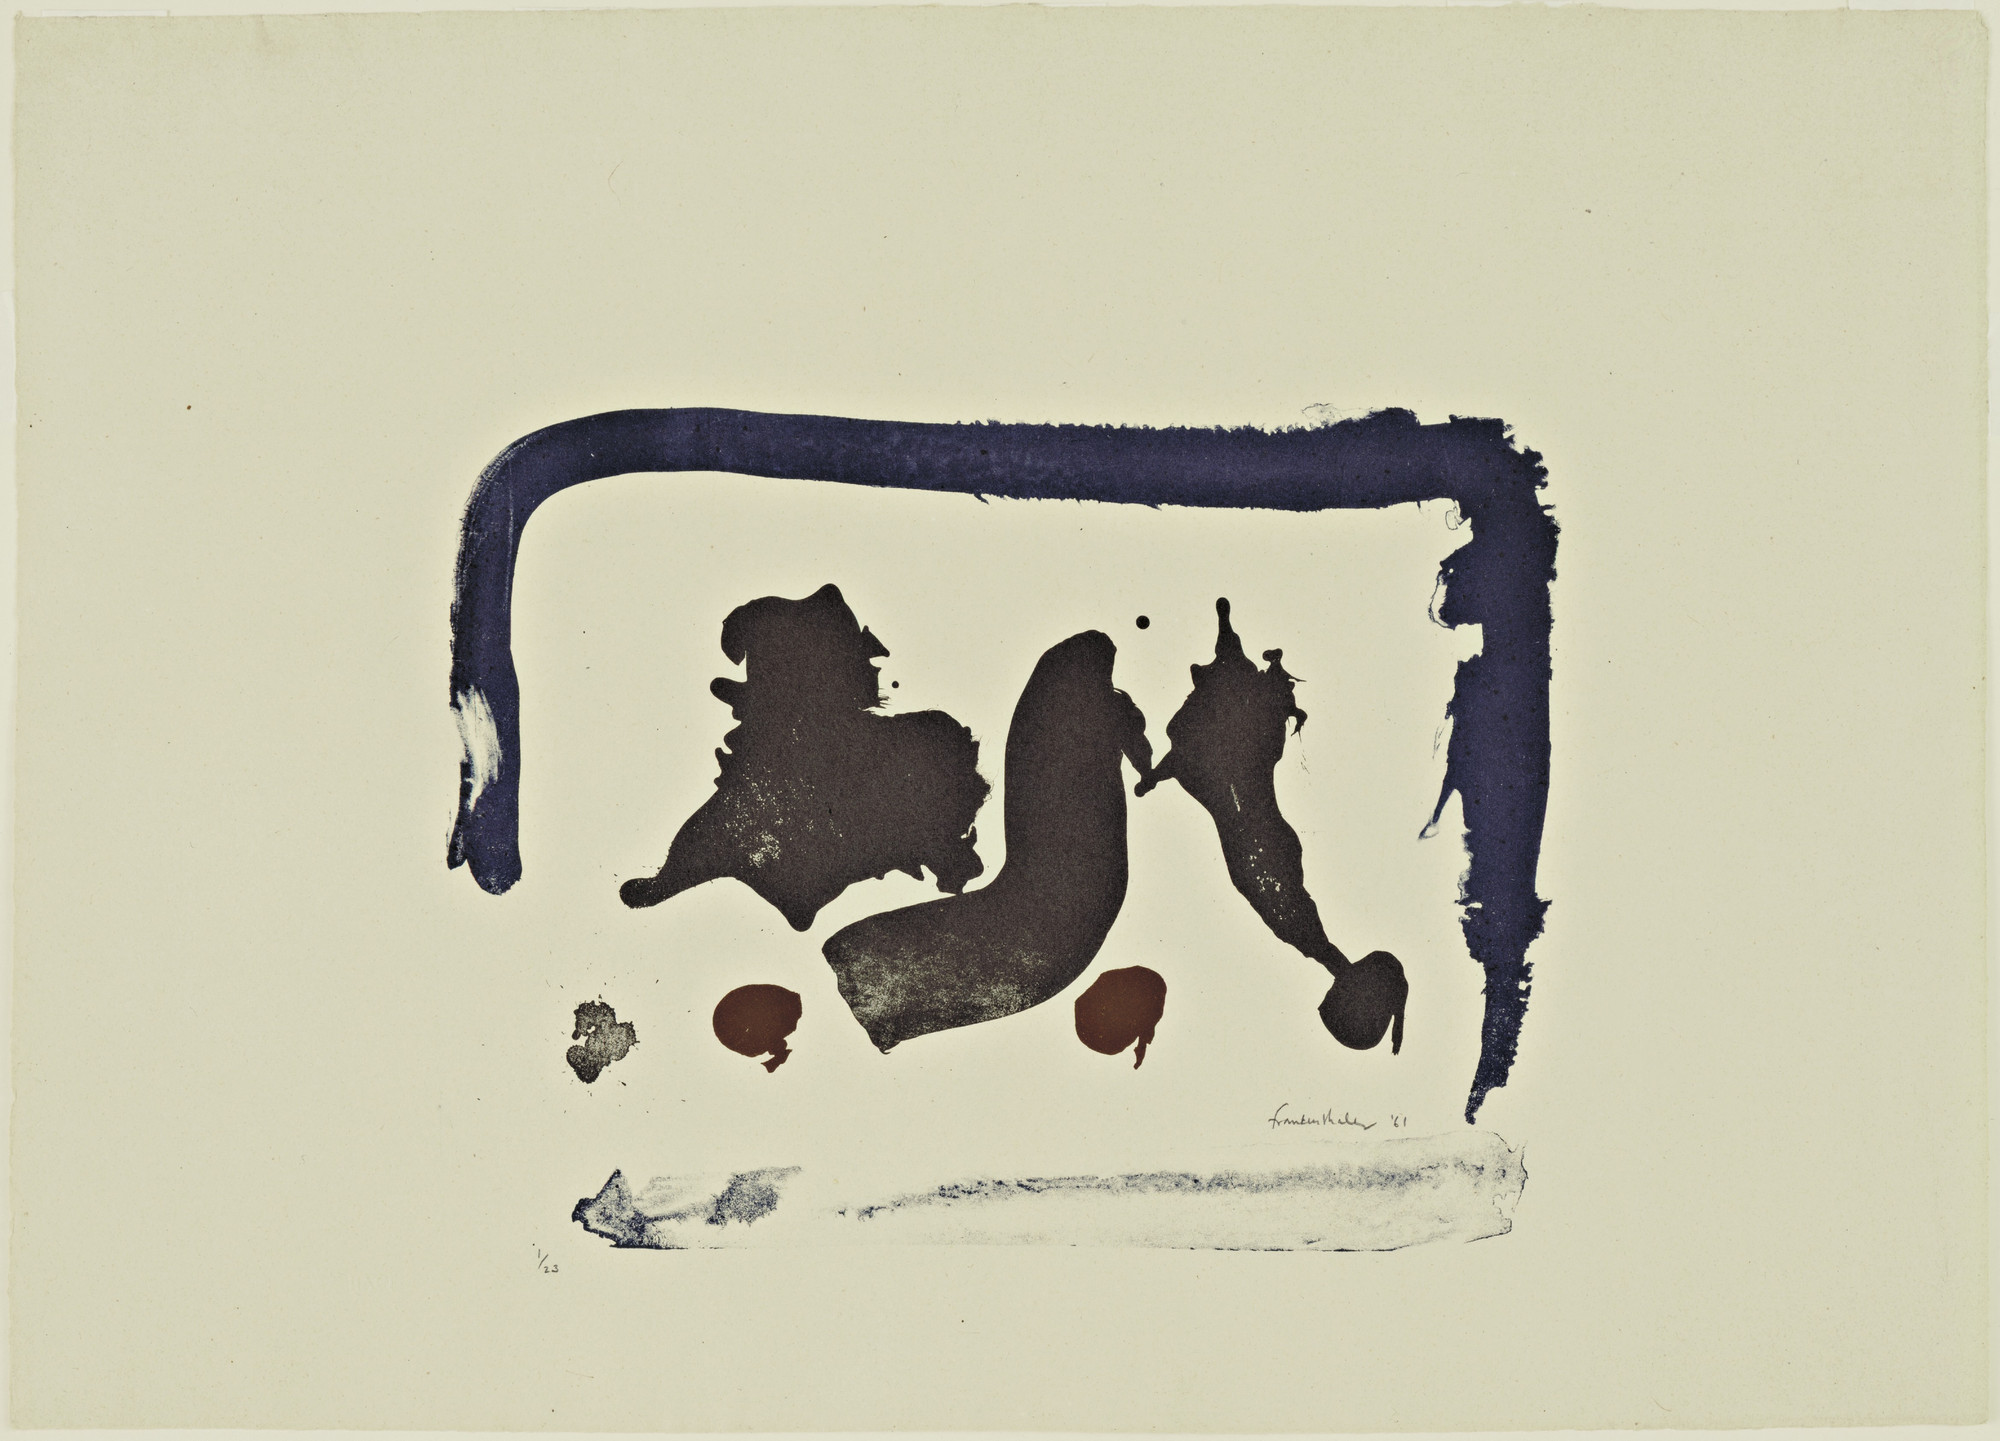 Helen Frankenthaler. Brown Moons. 1961